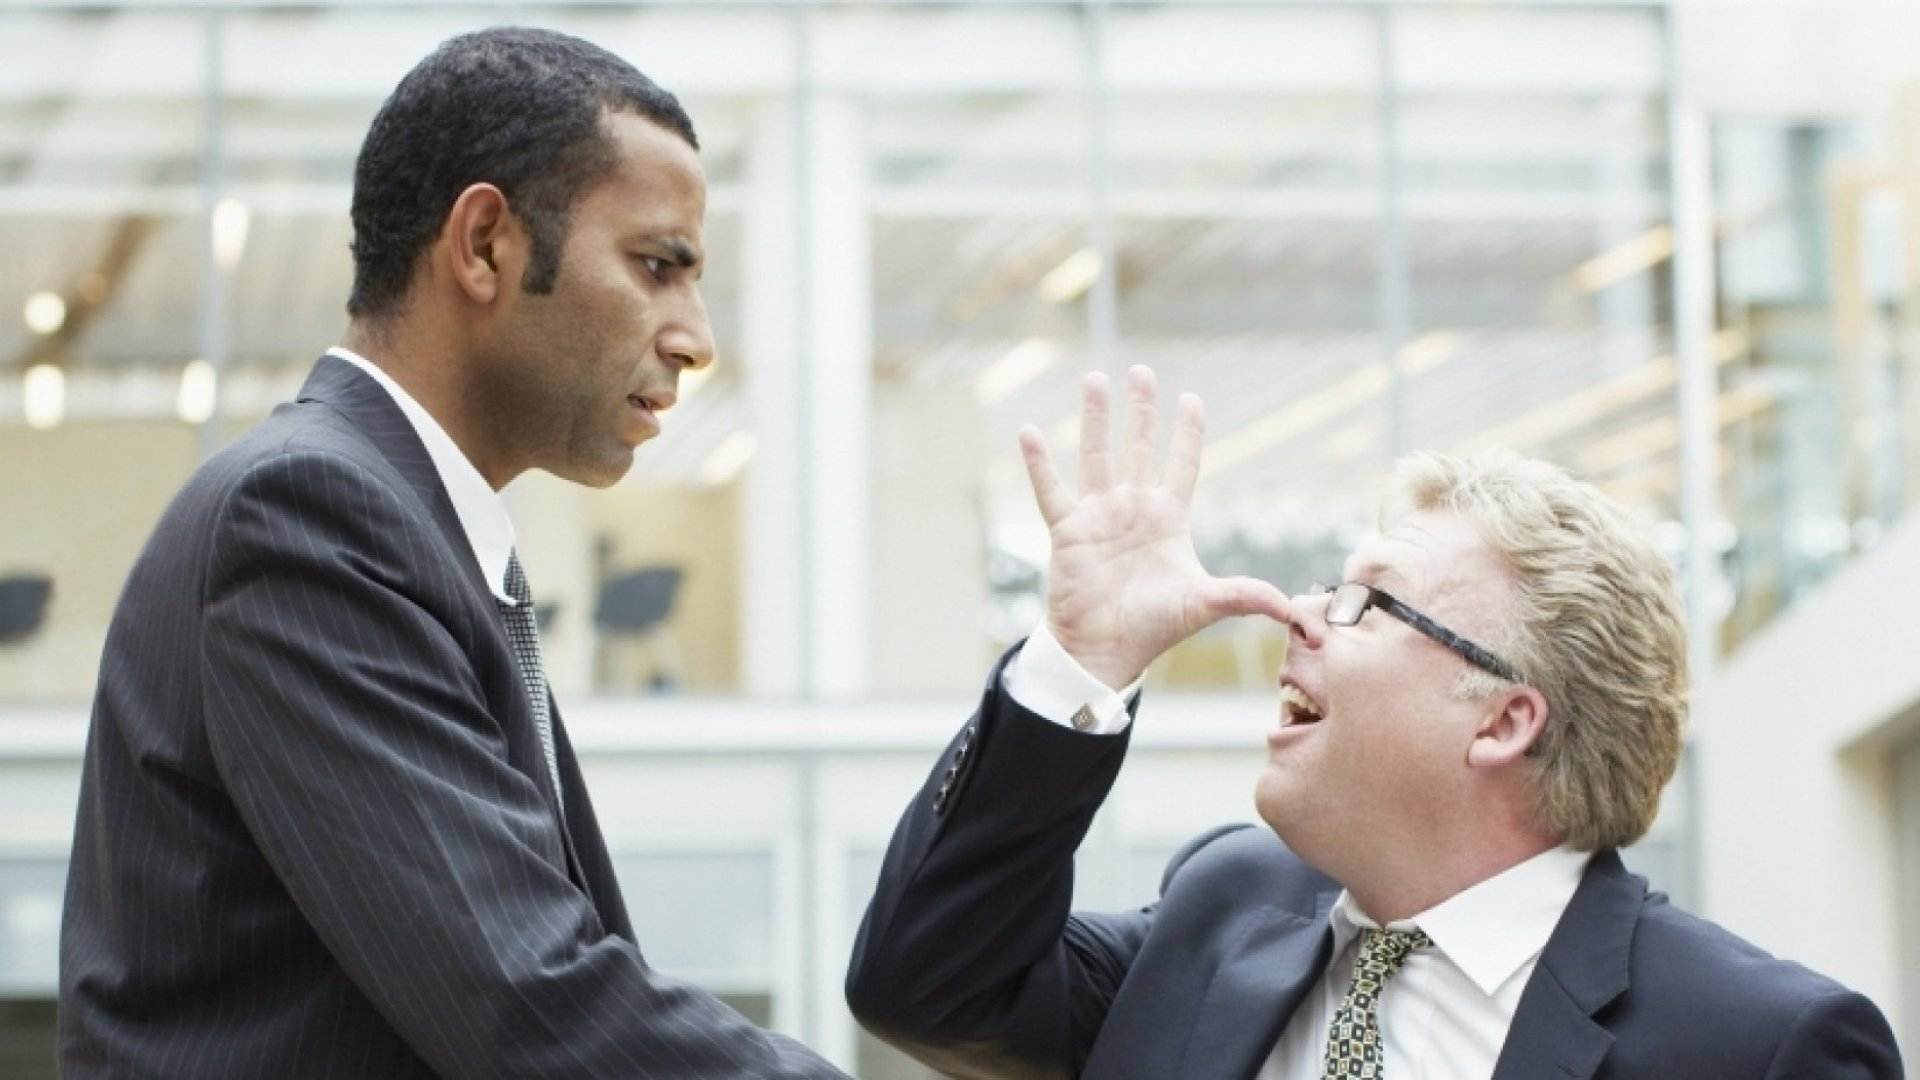 Is a Low Performer Better Than No Employee at All?